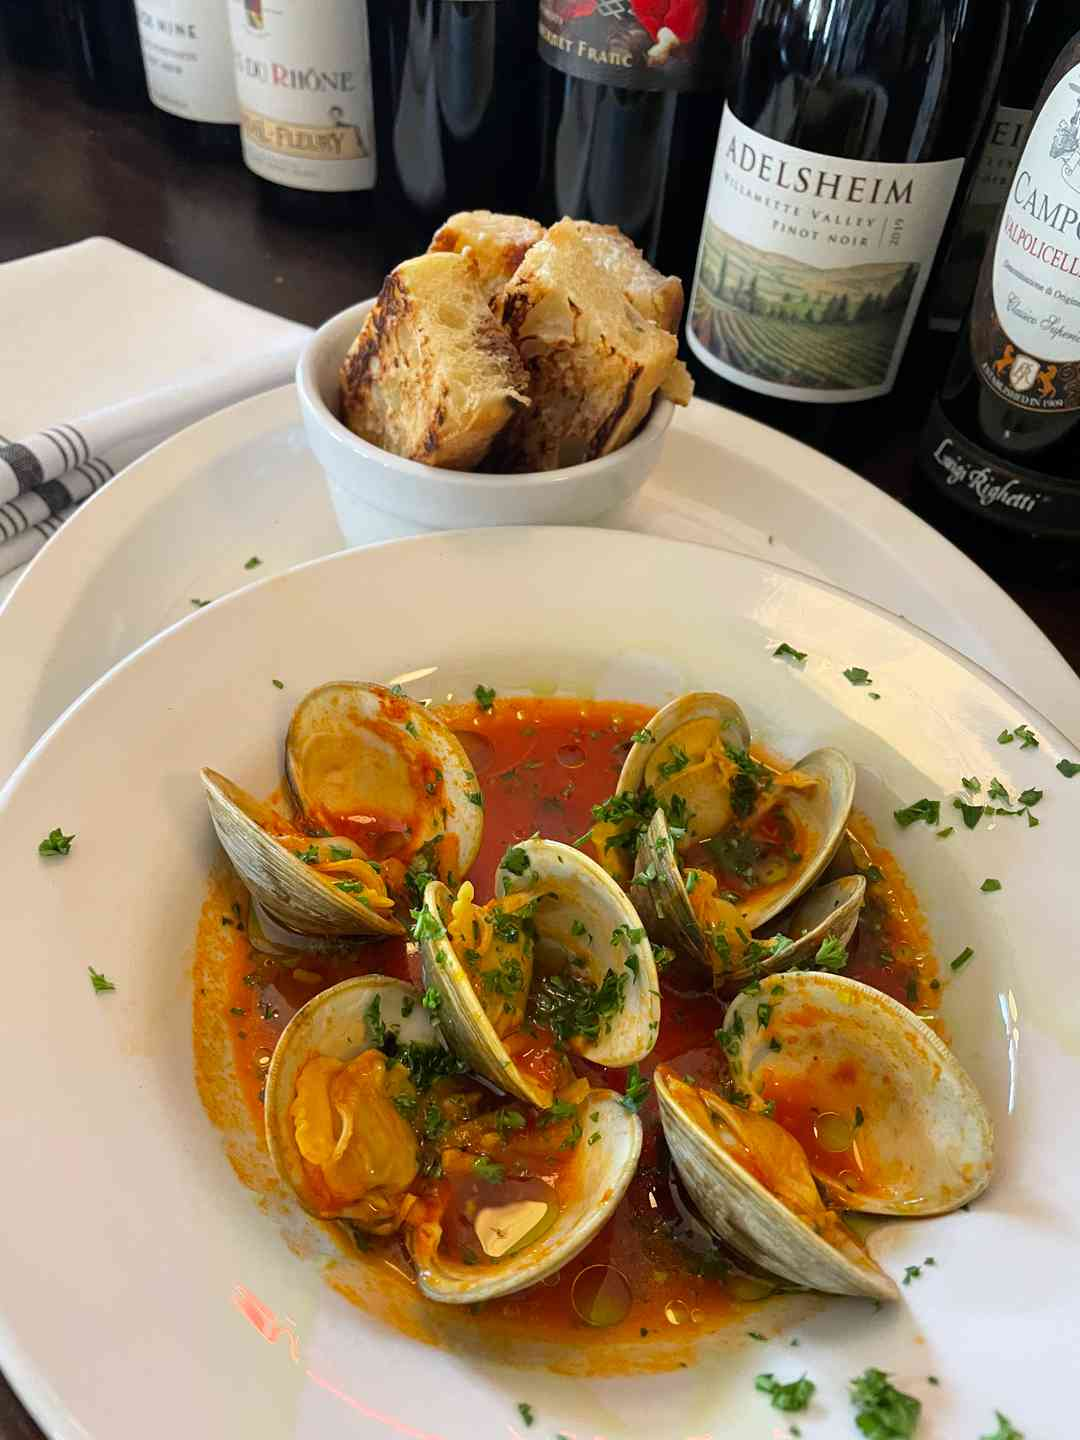 Clams in broth with bread